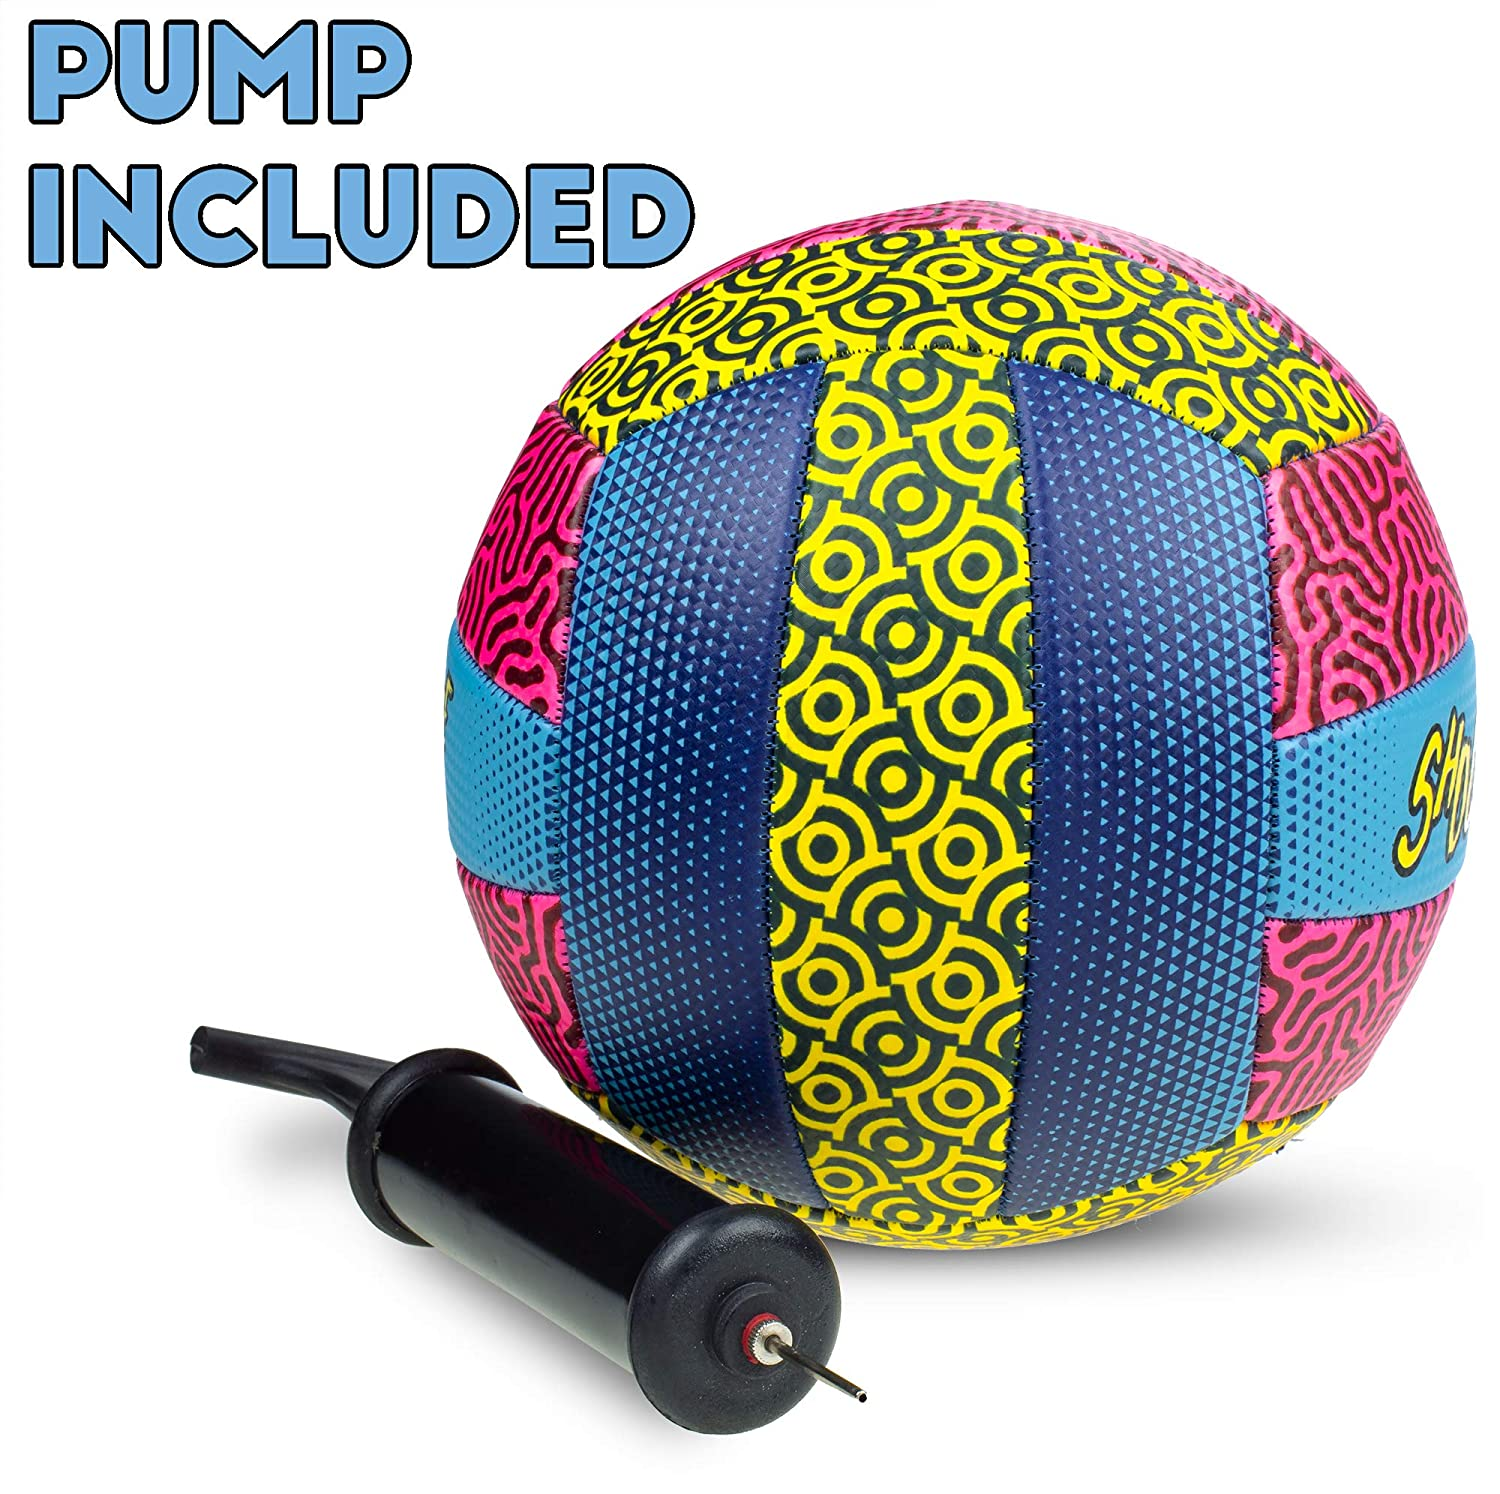 Shockwave Beach Volleyball Ideal for The Beach or Outdoor or Indoor Settings Funky 80s//90s Psychadelic Pattern with Bright Colors Distinctive Neon Design Ball for Kids and Adults